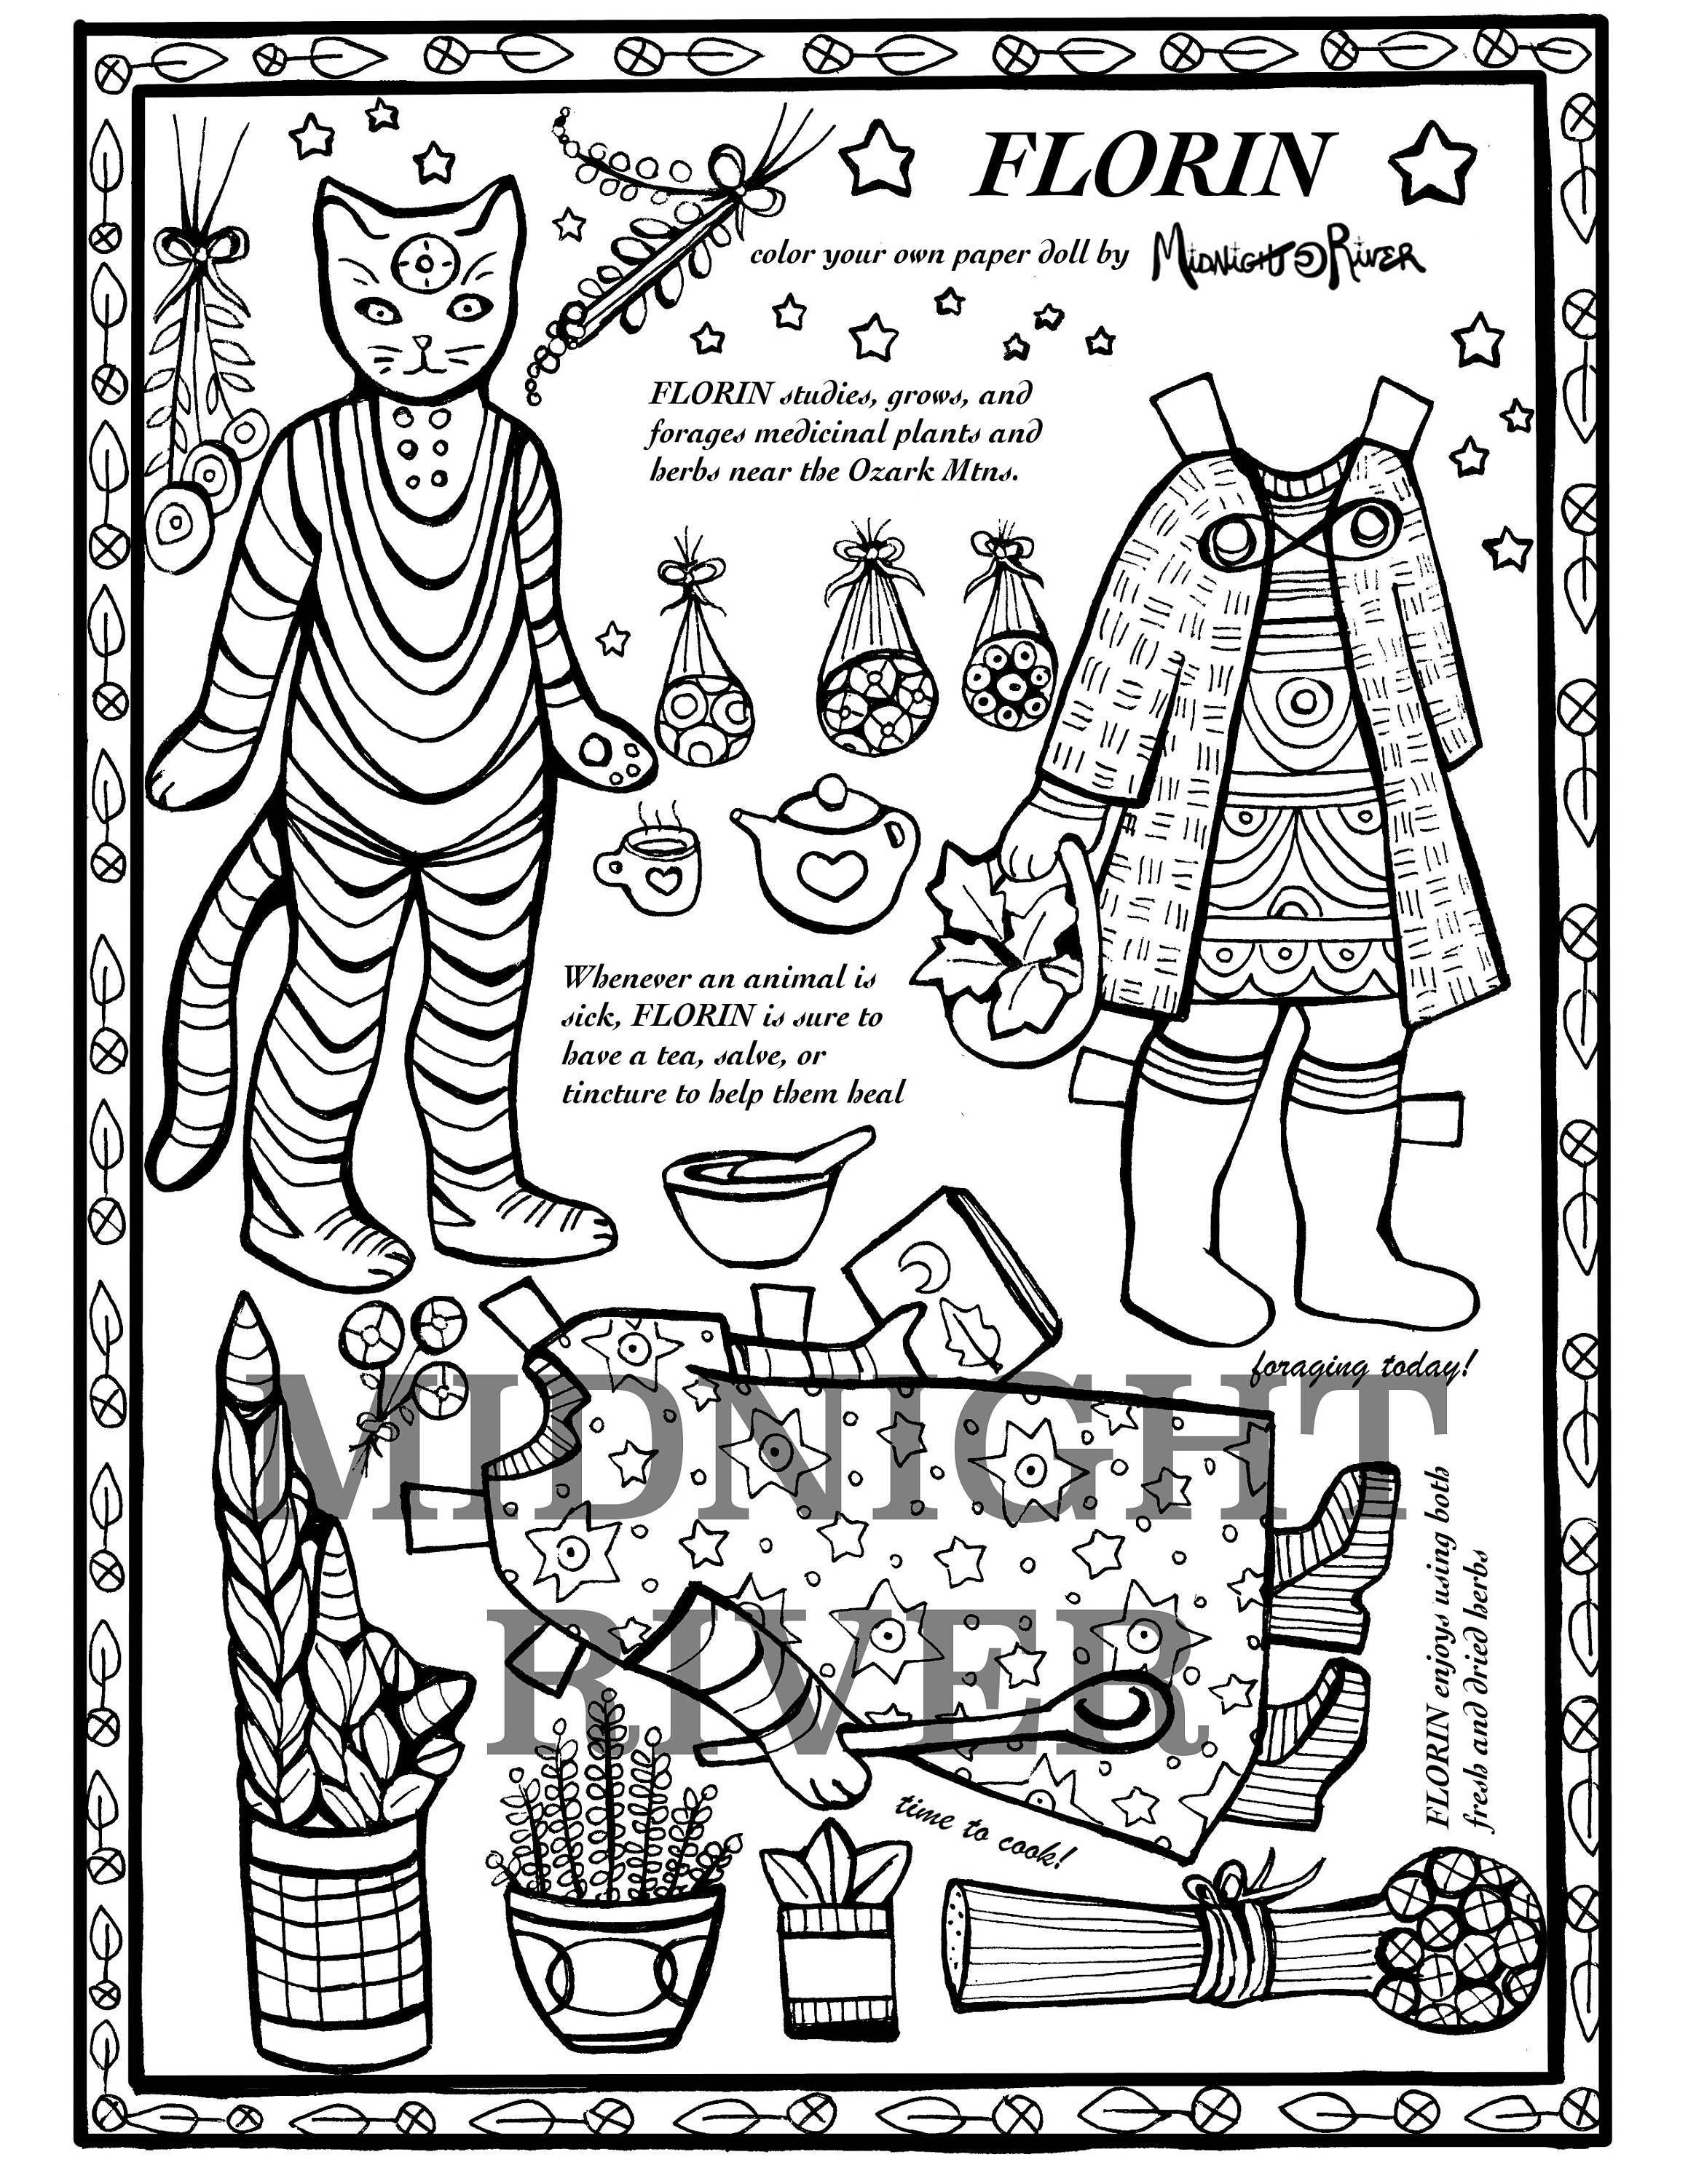 Herbalist Cat Paper Doll FLORIN // Printable Coloring Page // Magical Cat w/Two Outfits // Downloadable PDF